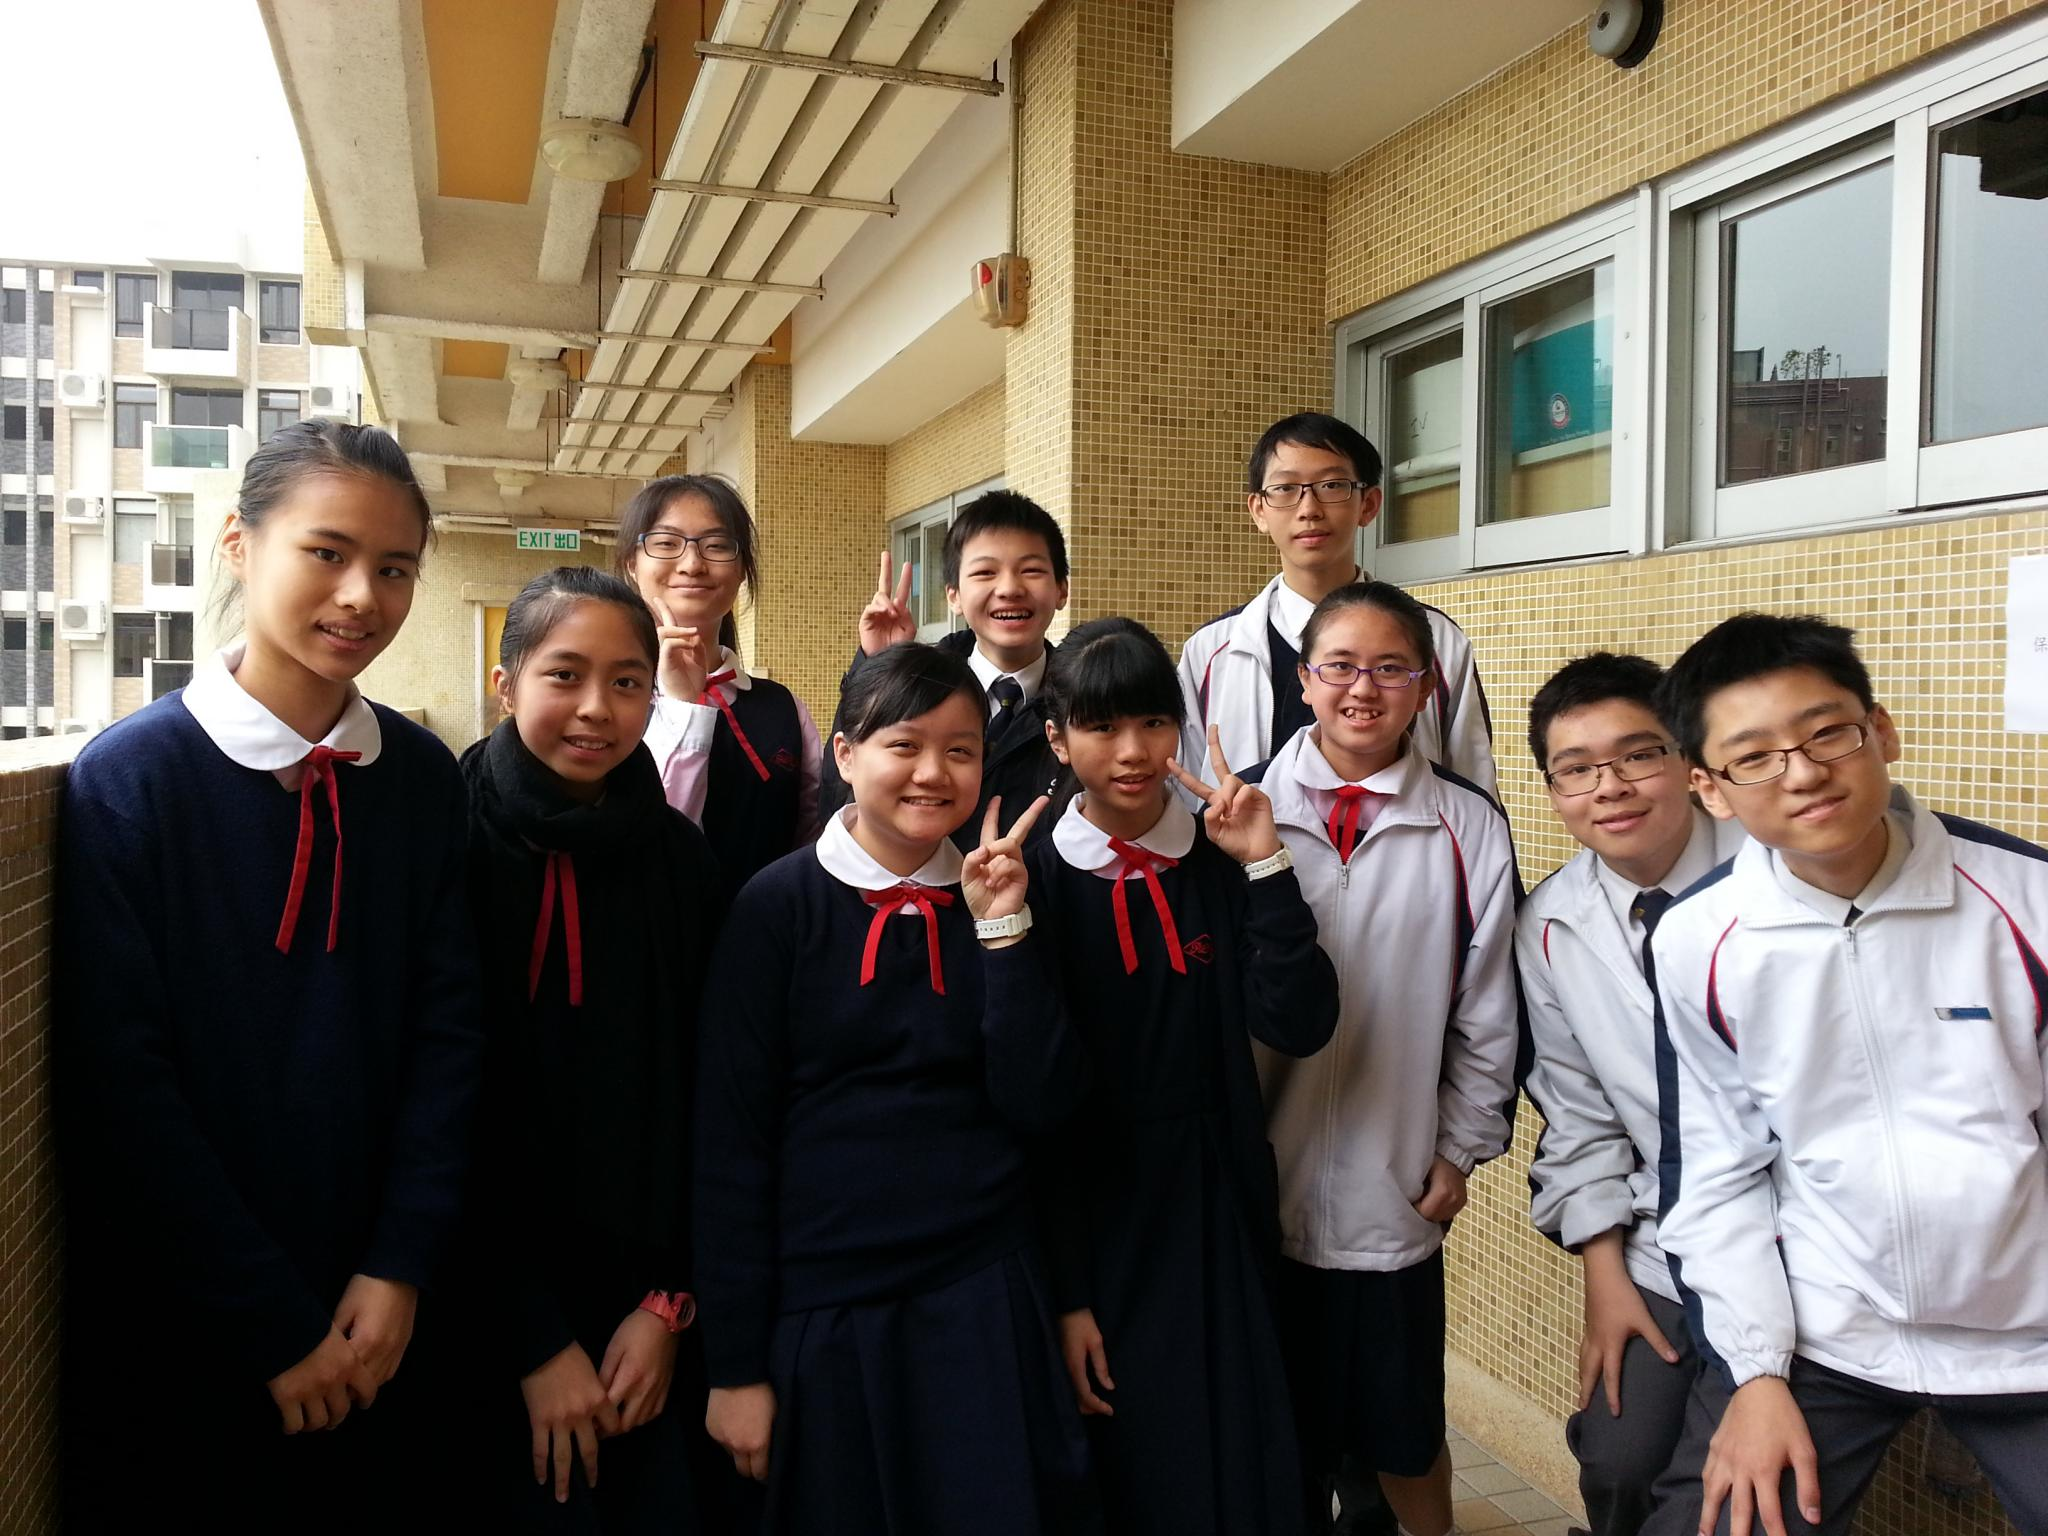 10 students joined the Forum which was held to make learning and teaching pack by filming the whole process of the forum. Students had to read Chapter 1, 4 and 6 of the Basic Law and prepare some questions to ask before attending the forum.